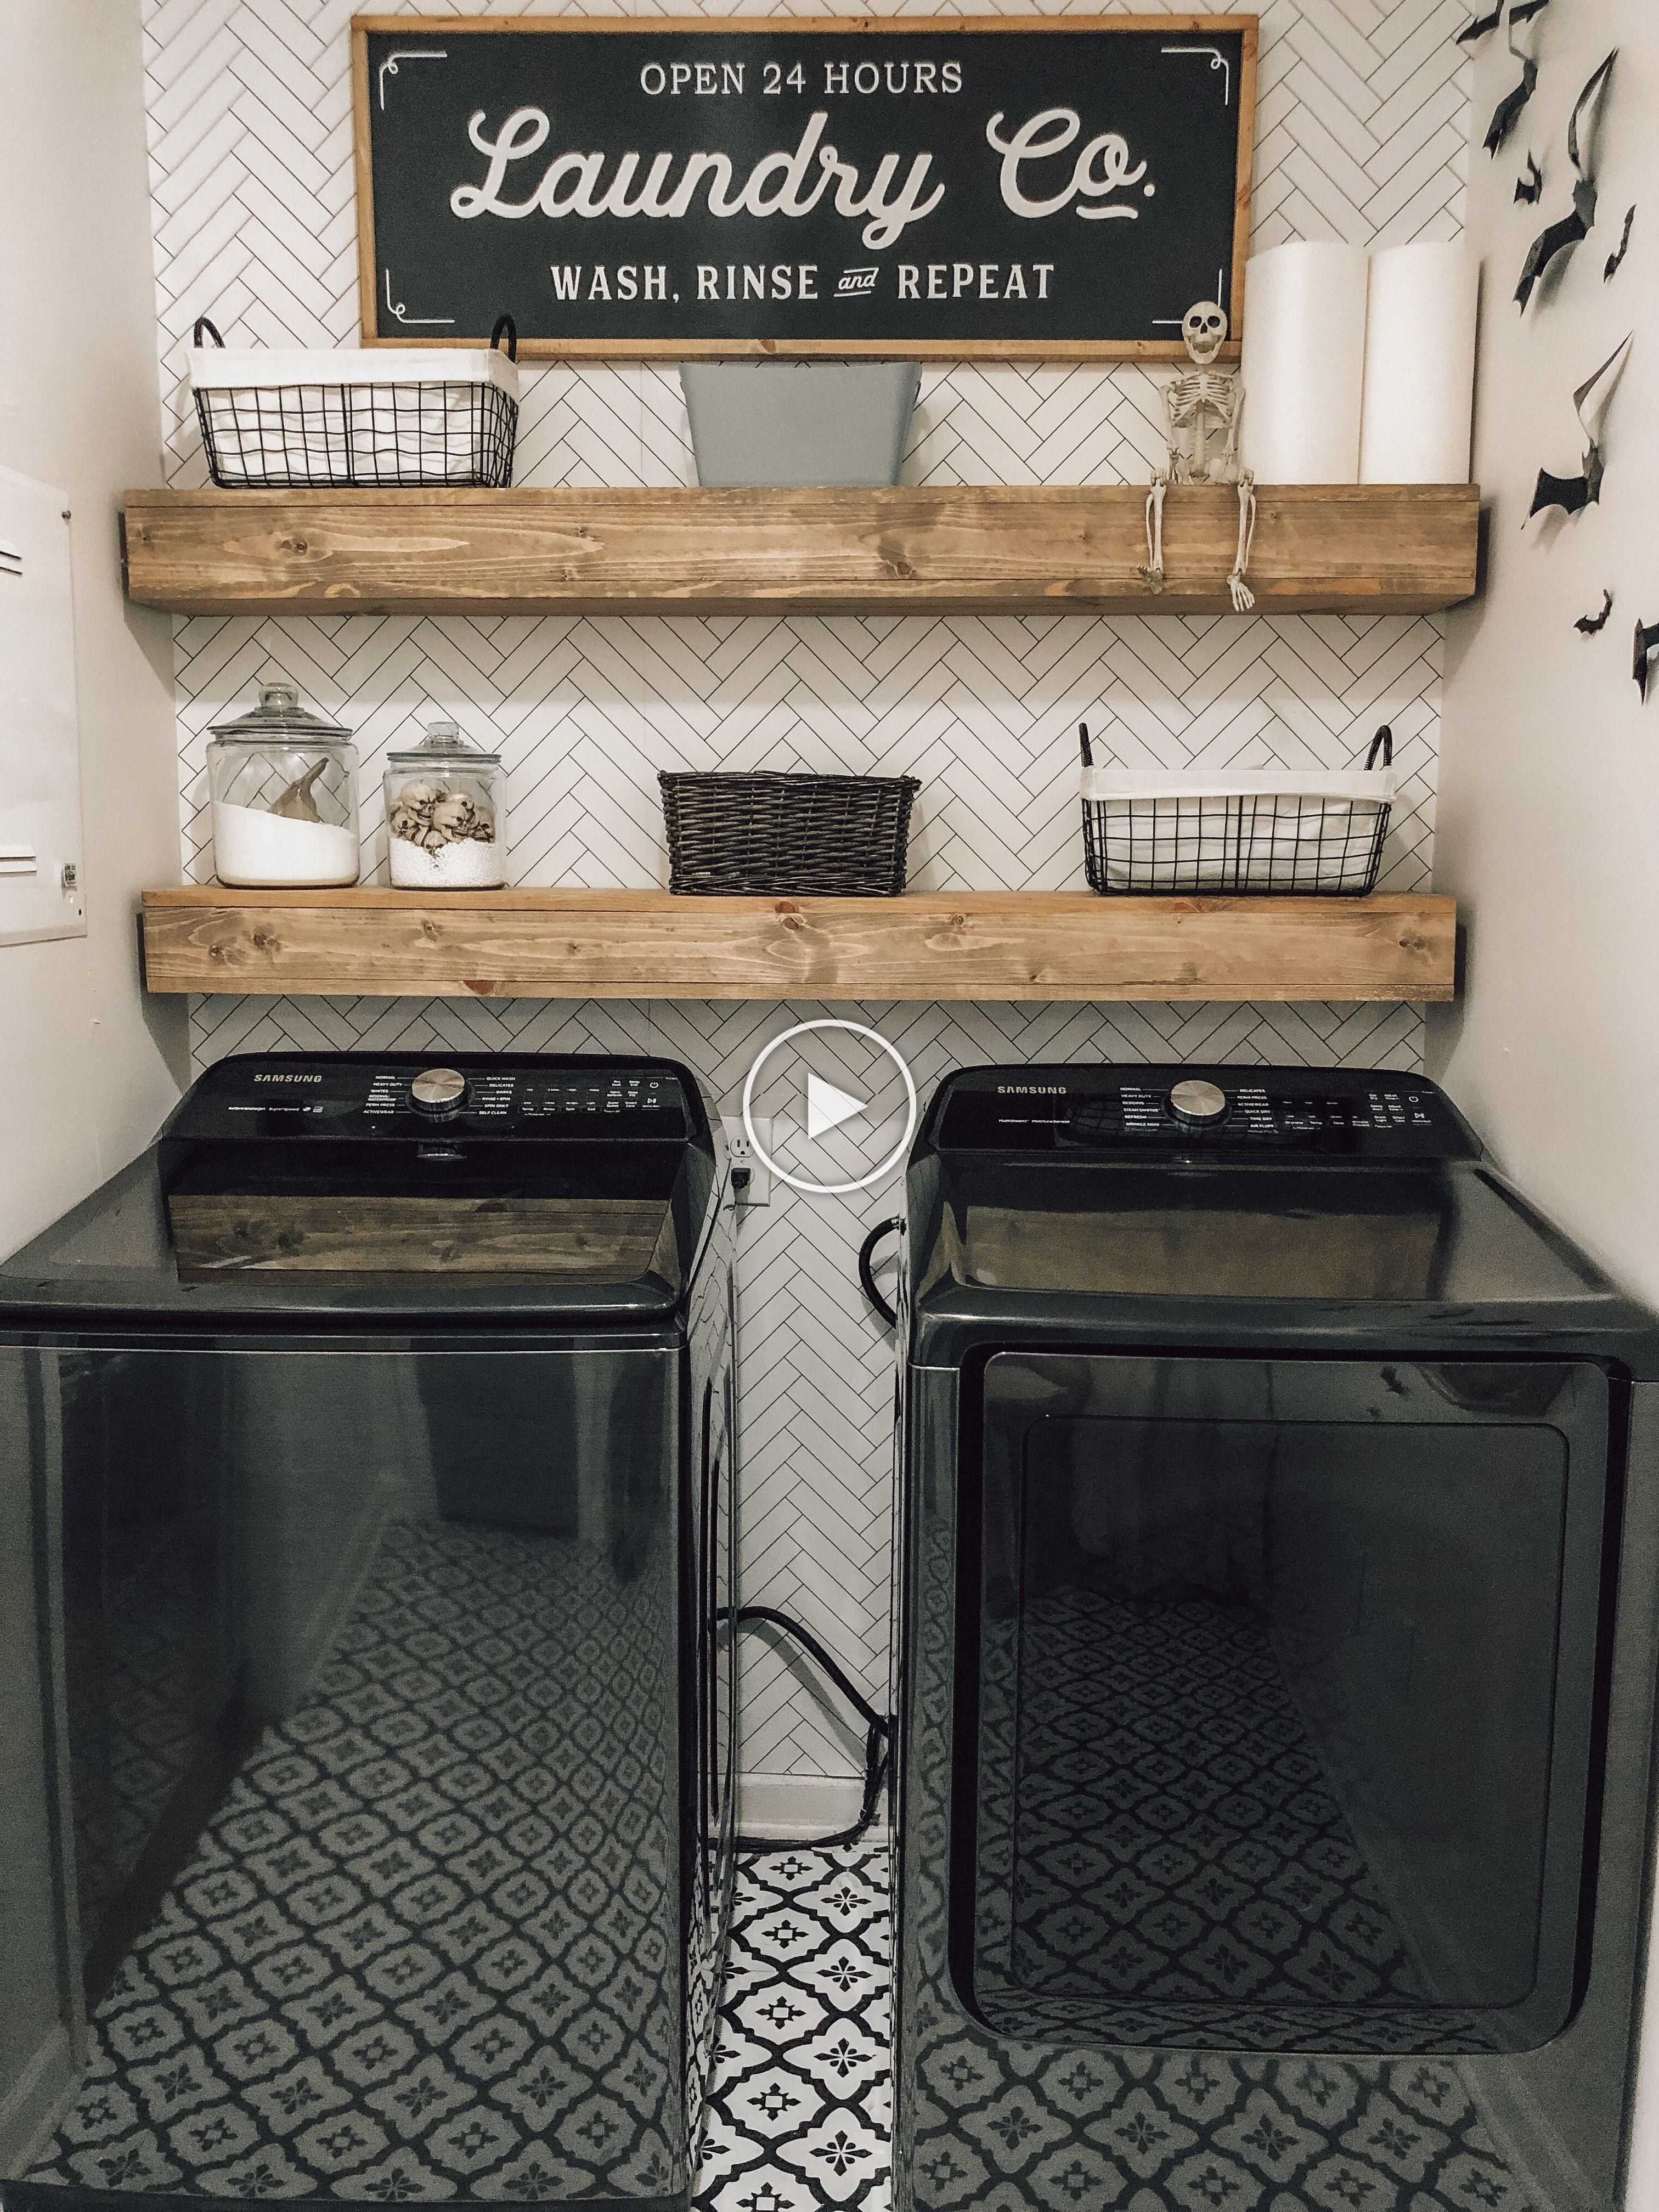 Diy Laundry Room With Wallpaper Peel And Stick Tile Flooring Diy Shelving And Samsunghomeap Laundry Room Diy Farmhouse Laundry Room Laundry Room Renovation